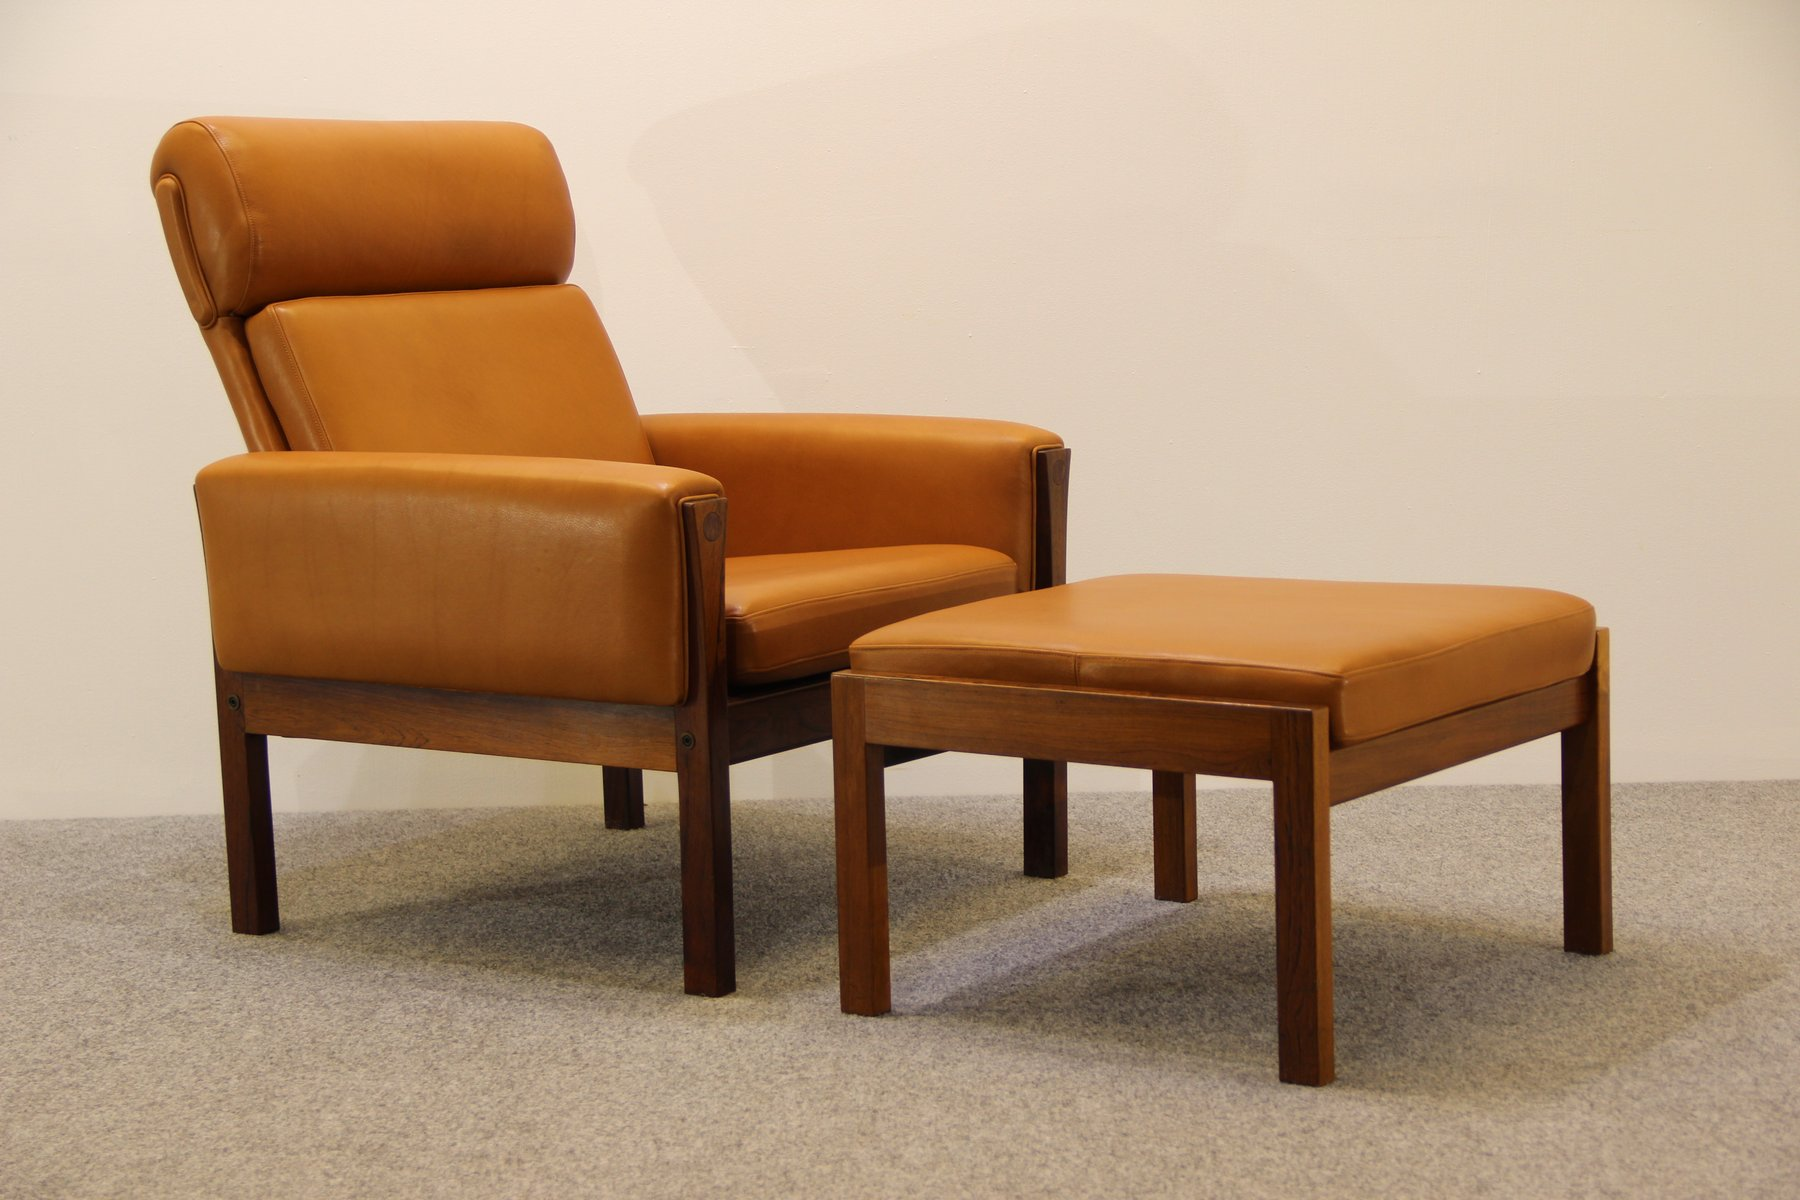 Mid Century AP62 Lounge Chair & Ottoman by Hans J Wegner for AP